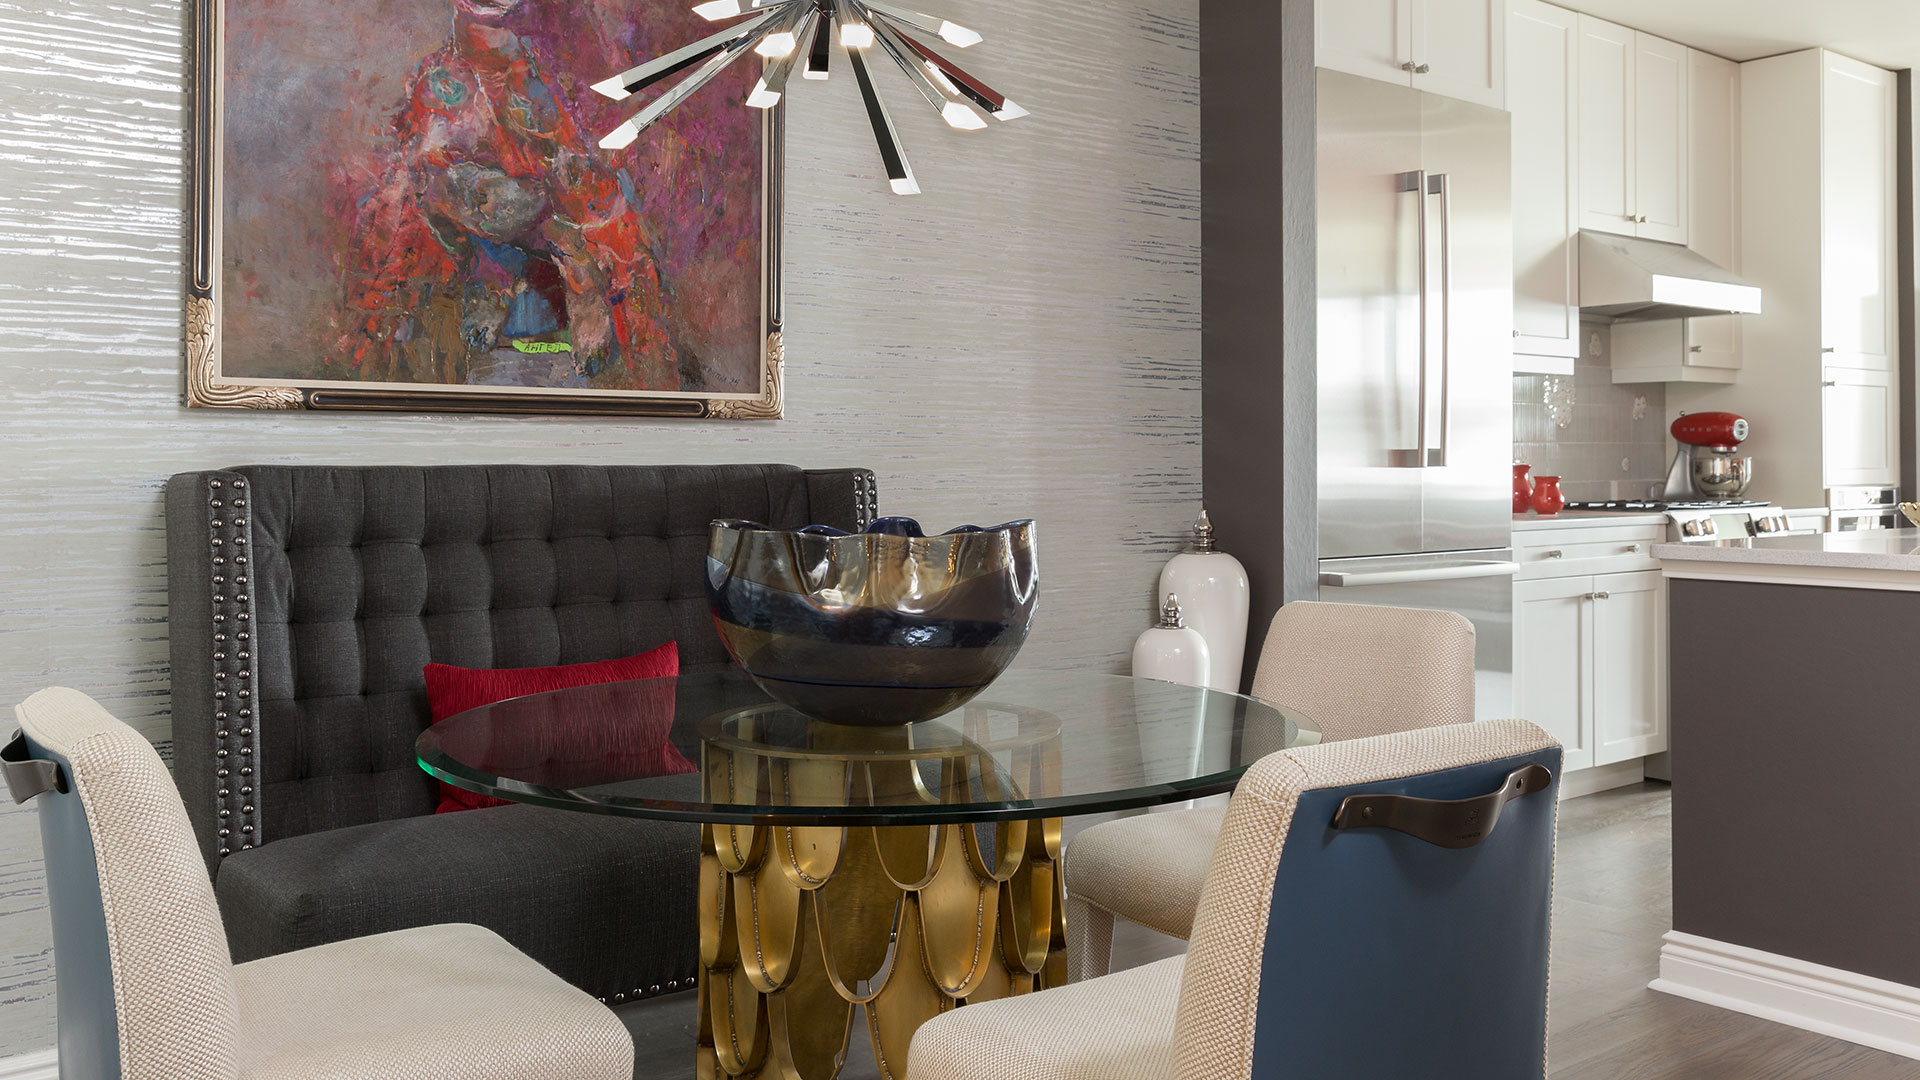 Red Bank Interior Design Commercial And Event Specialists In New York NY Holmdel